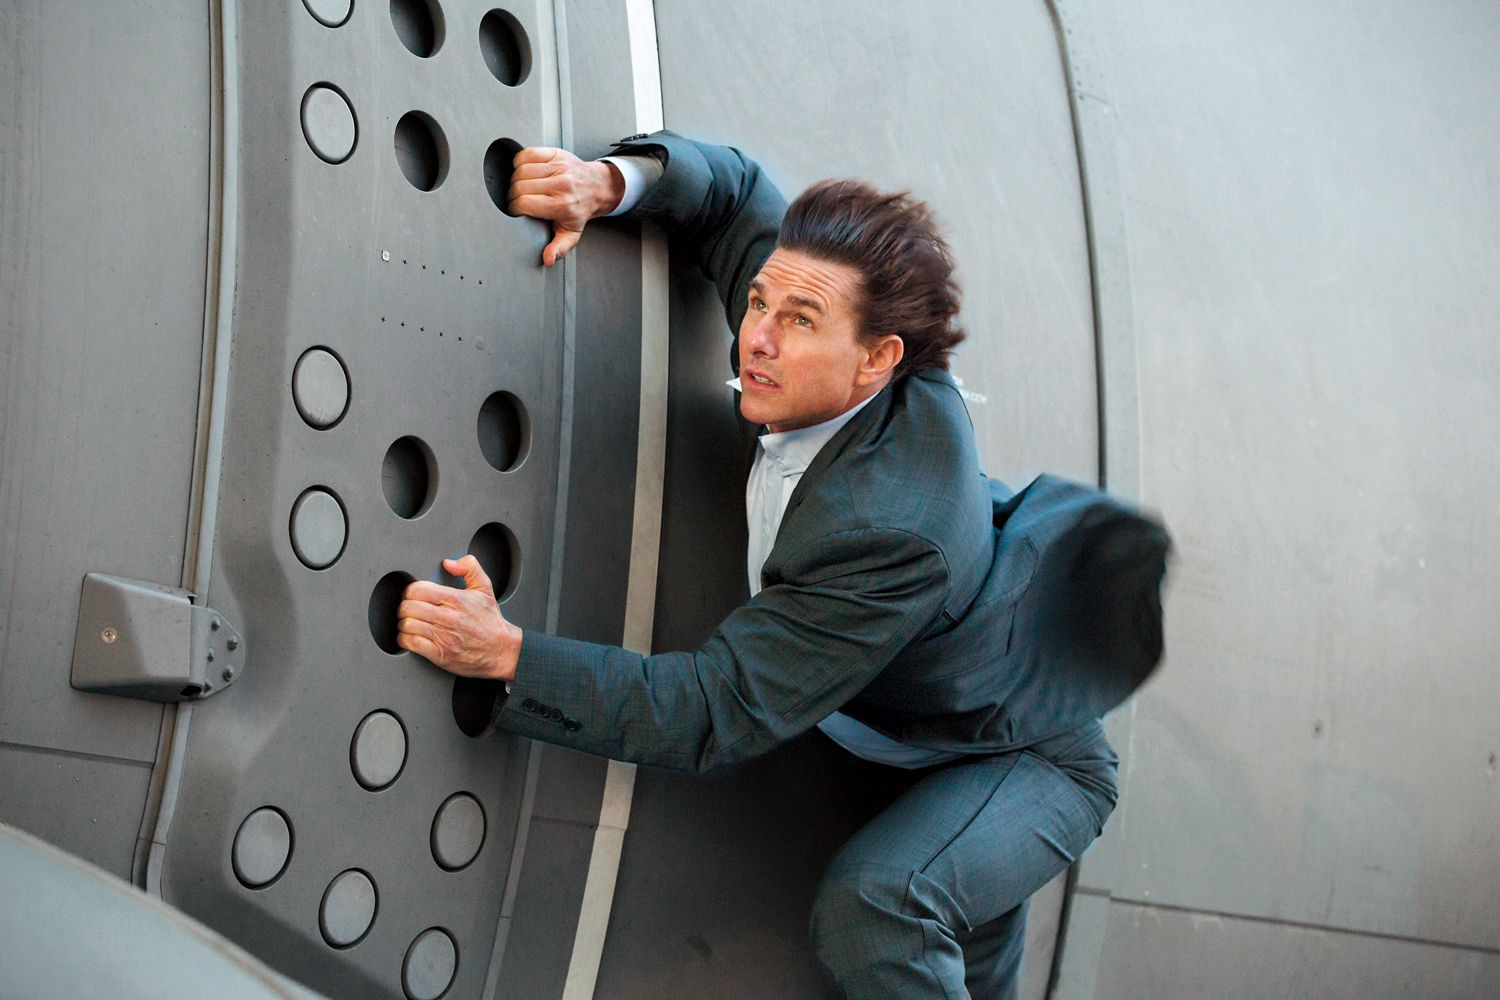 Tom Cruise in Mission: Impossible – Rogue Nation